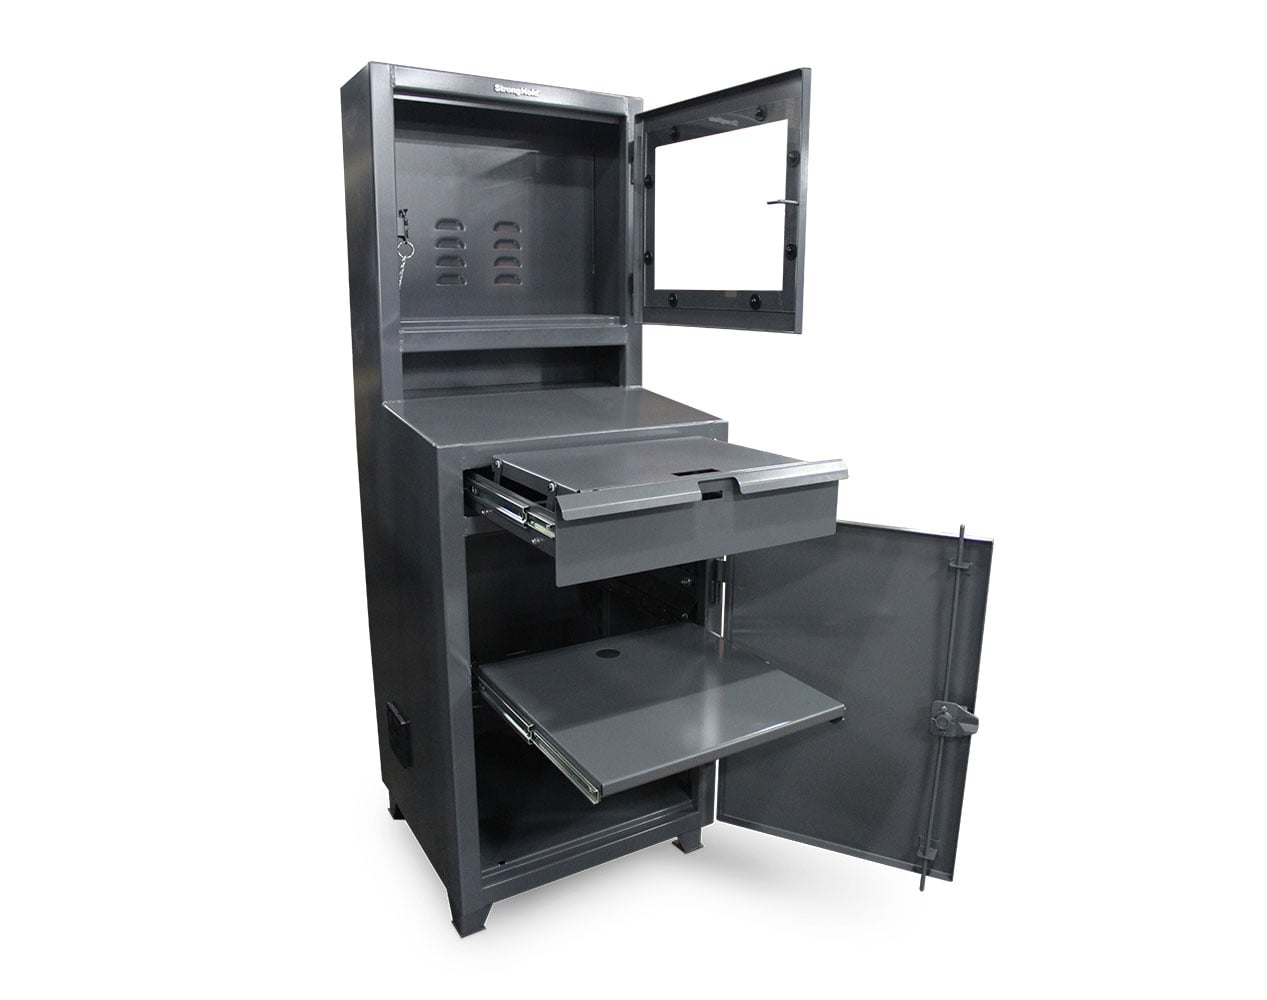 Extra Heavy Duty 12 GA Flat Screen Computer Cabinet with Retractable Keyboard, Slide-Out Shelf – 26 In. W x 24 In. D x 72 In. H